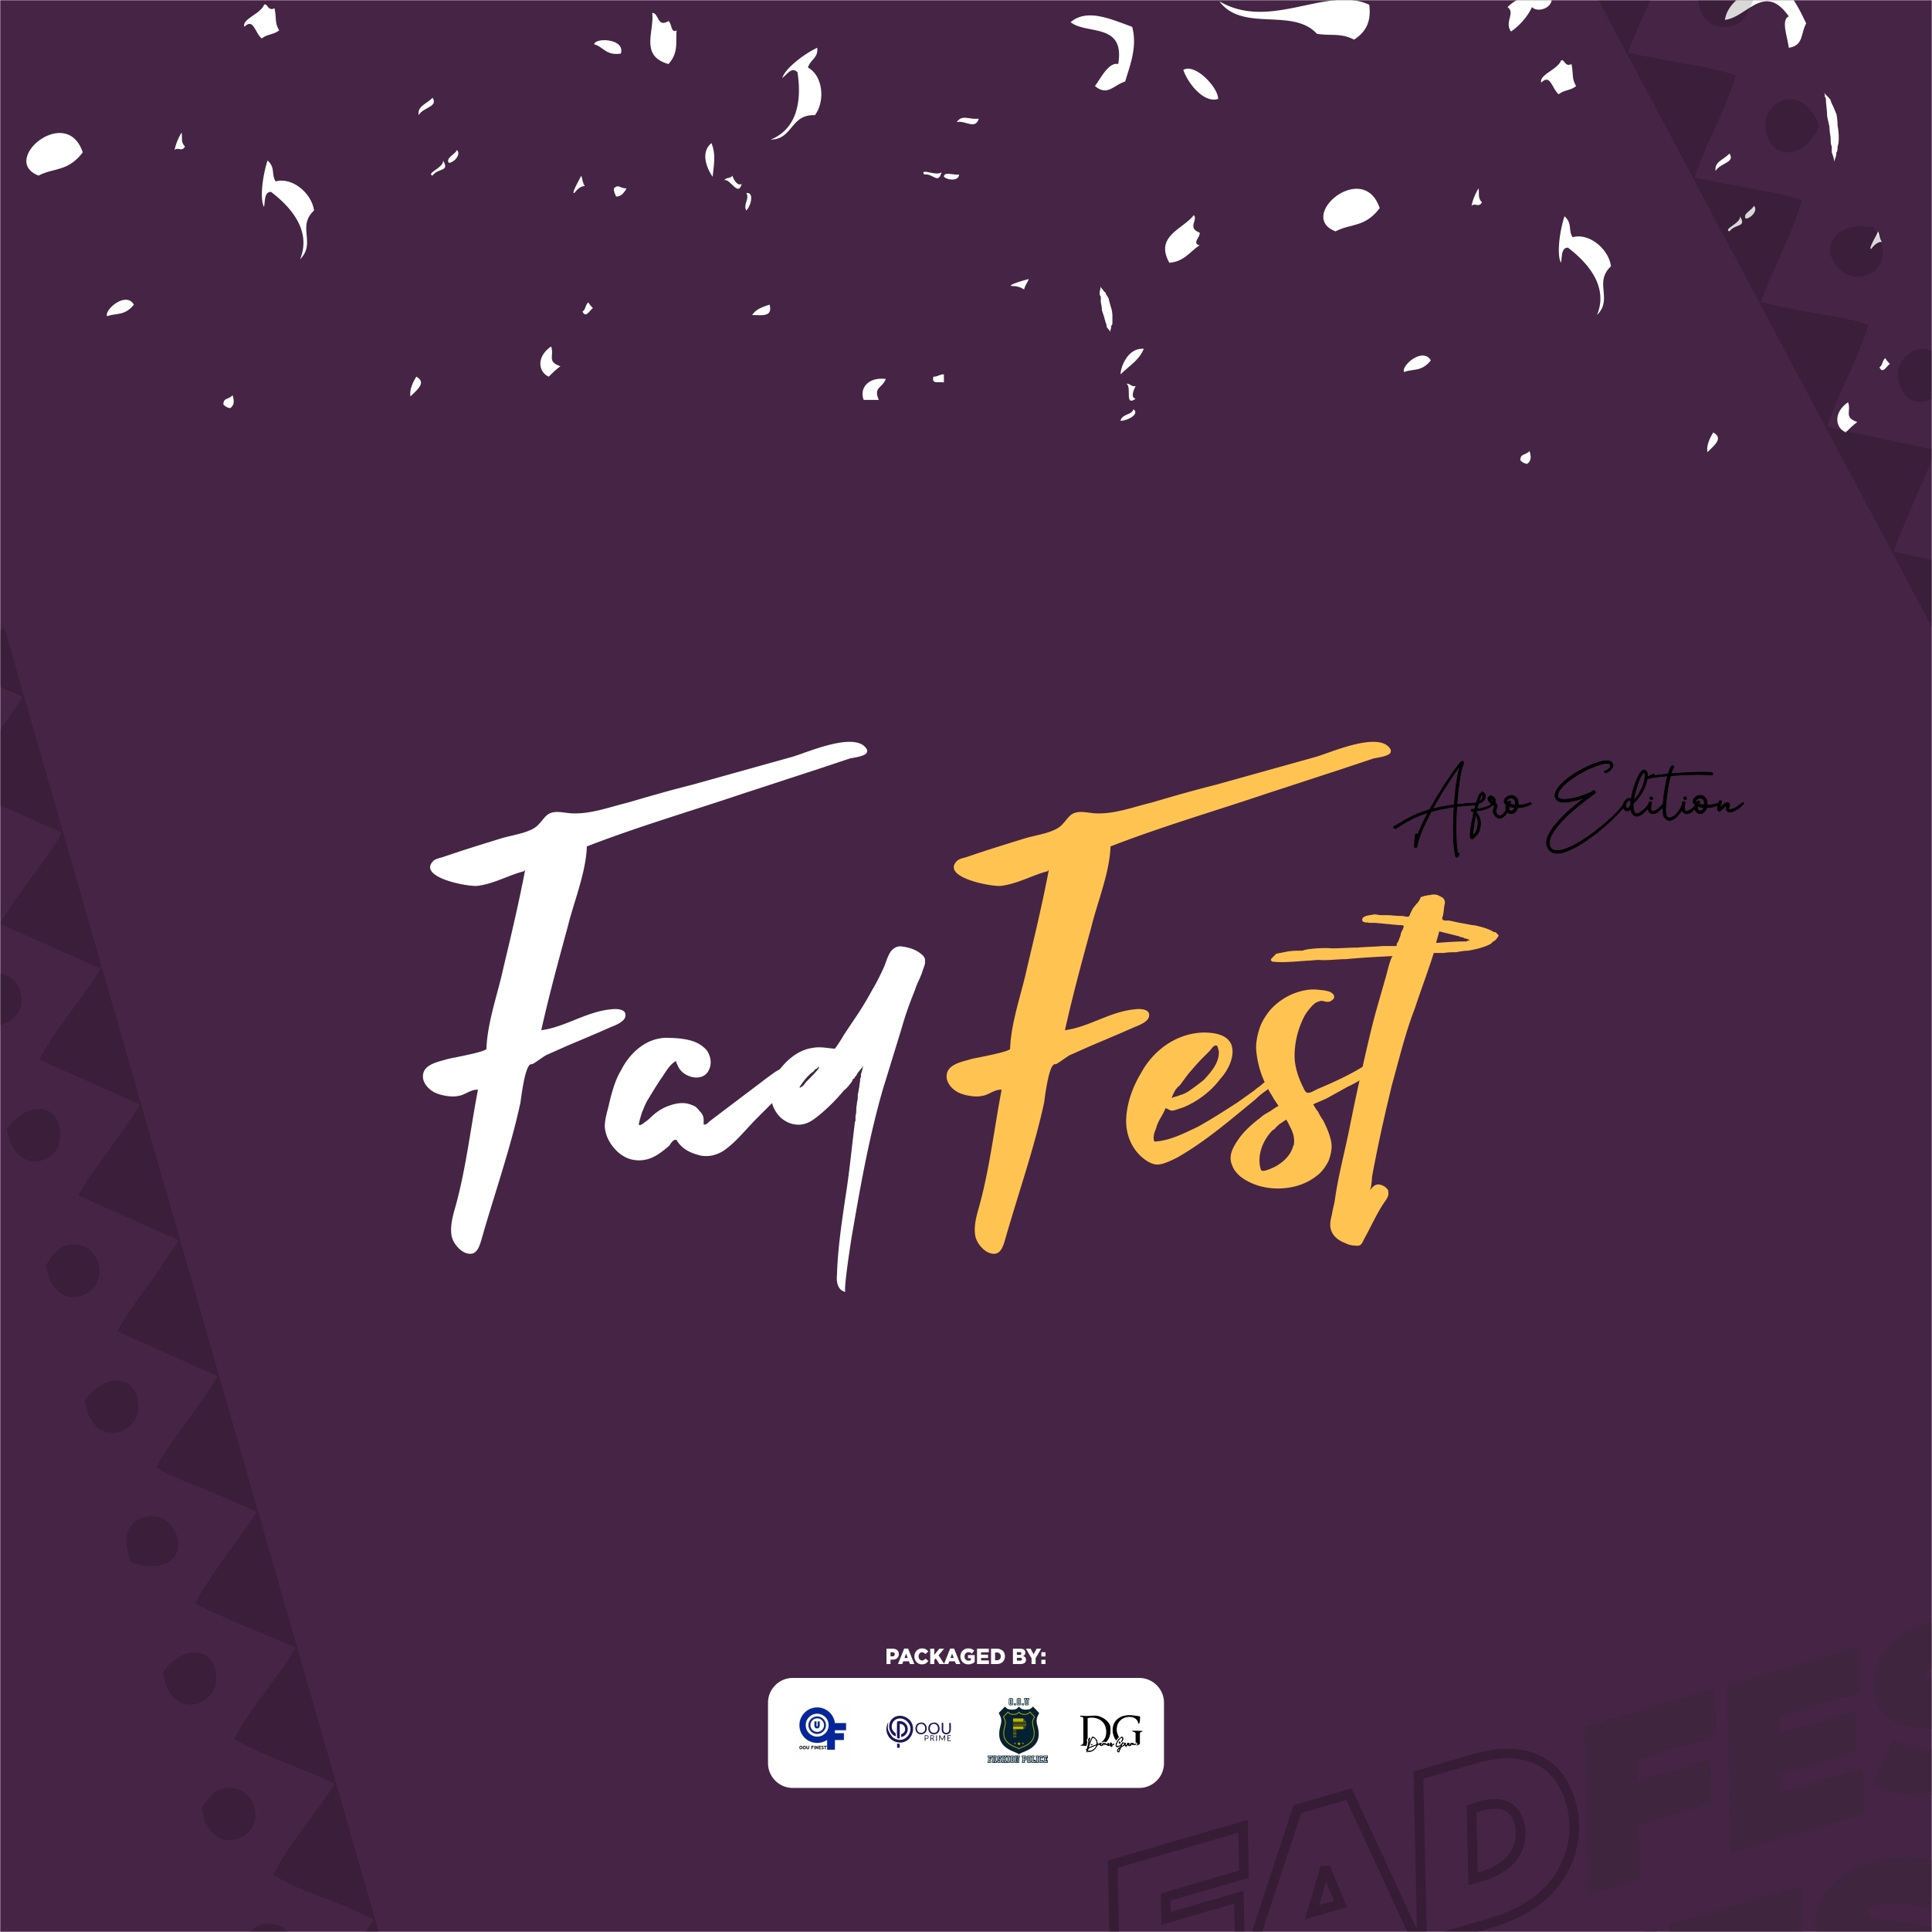 FADFEST(Afro edition) Post free event in Nigeria using tickethub.ng, buy and sell tickets to event